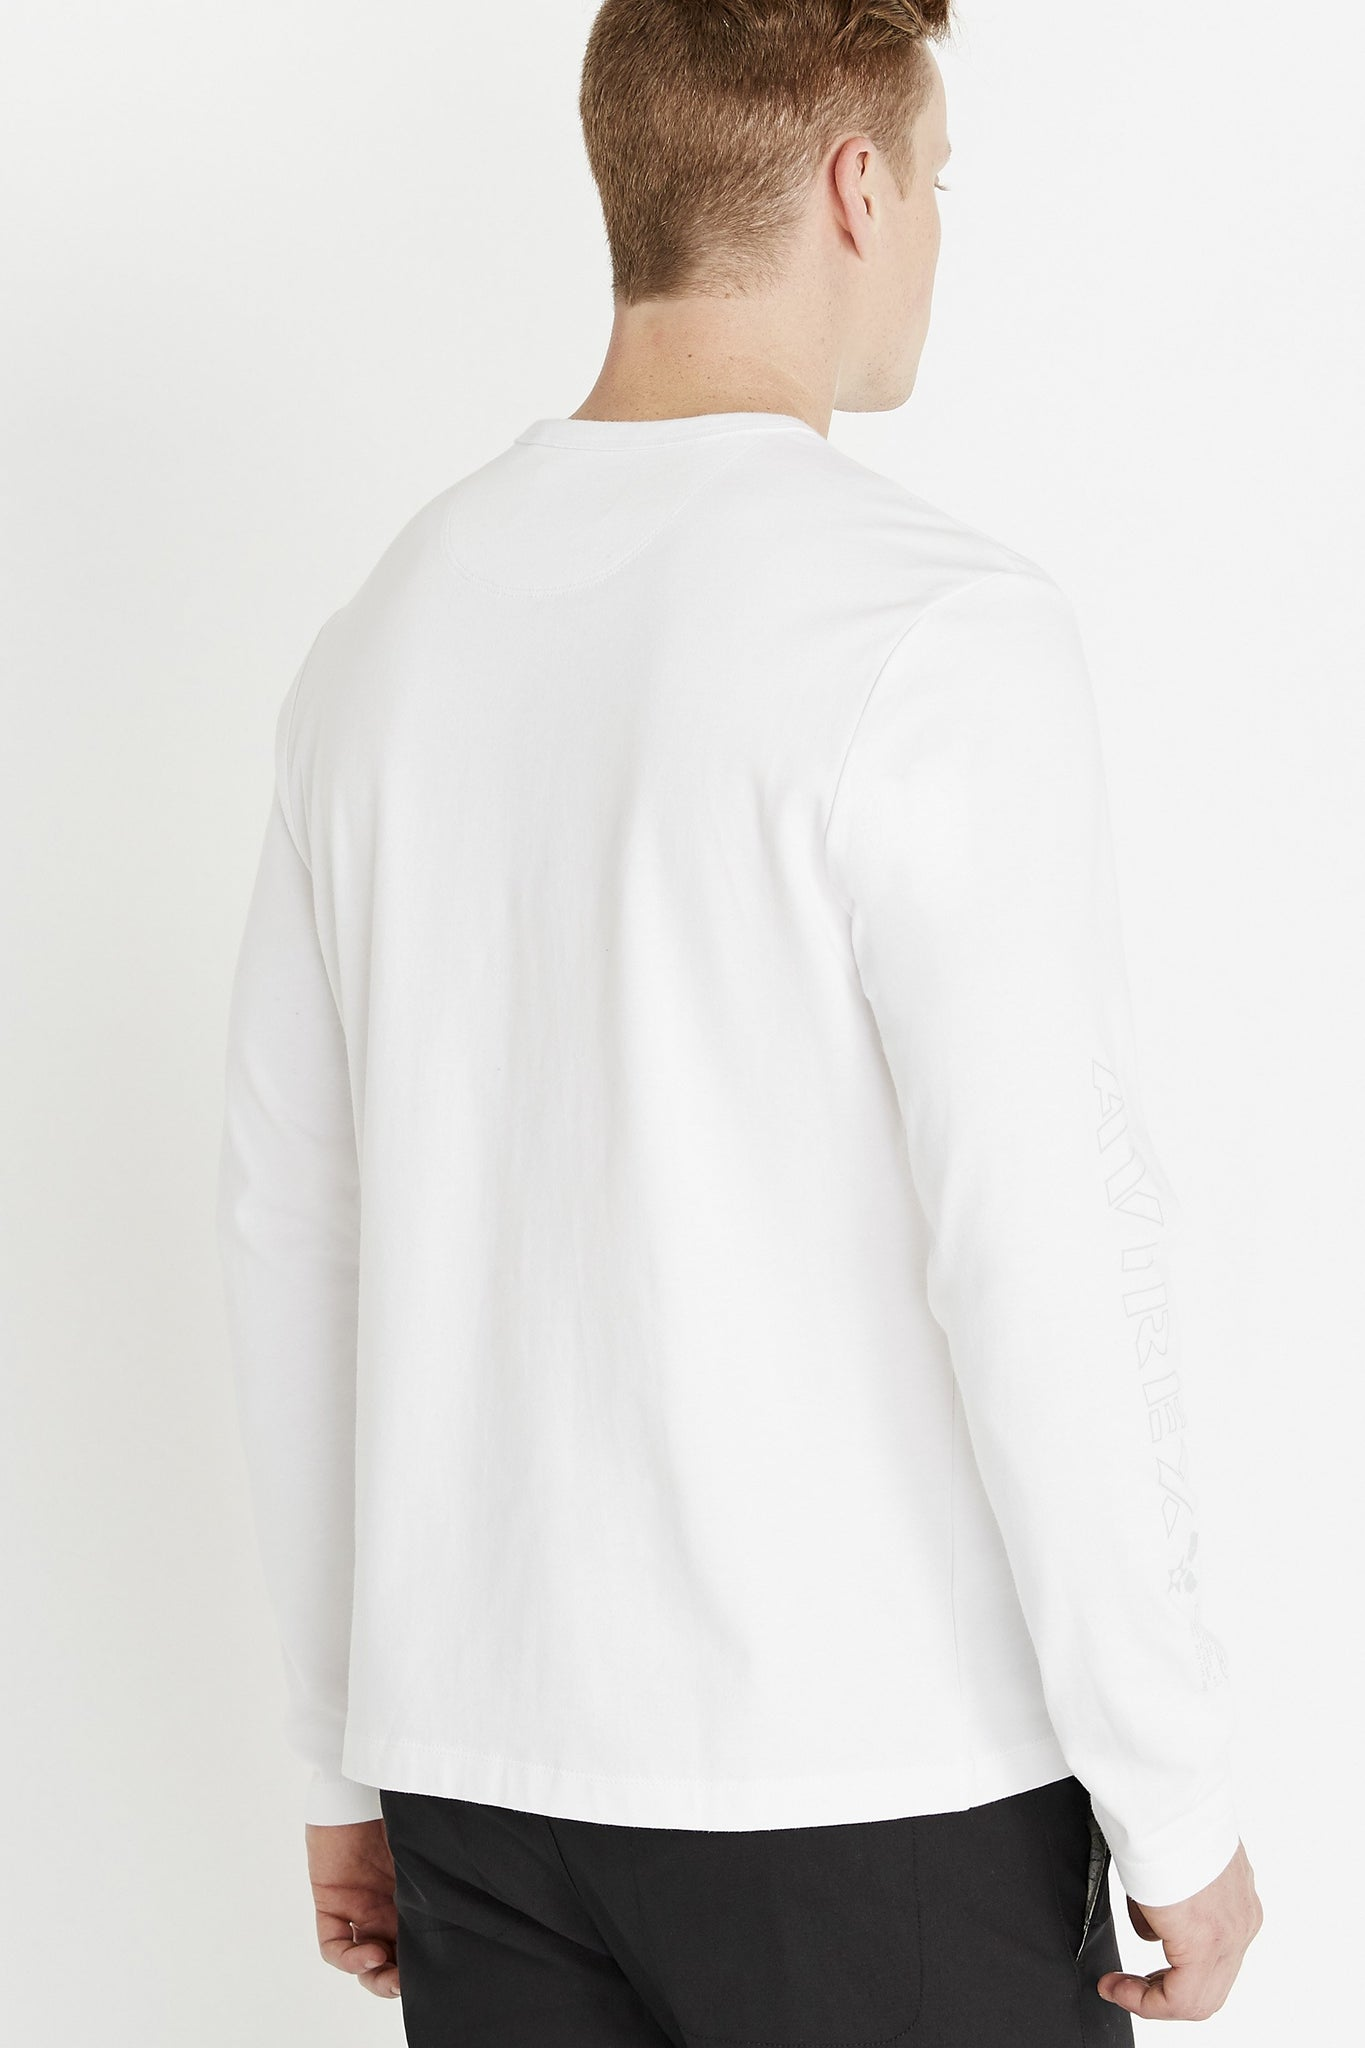 Back view of men wearing a white long sleeve crew neck T-shirt